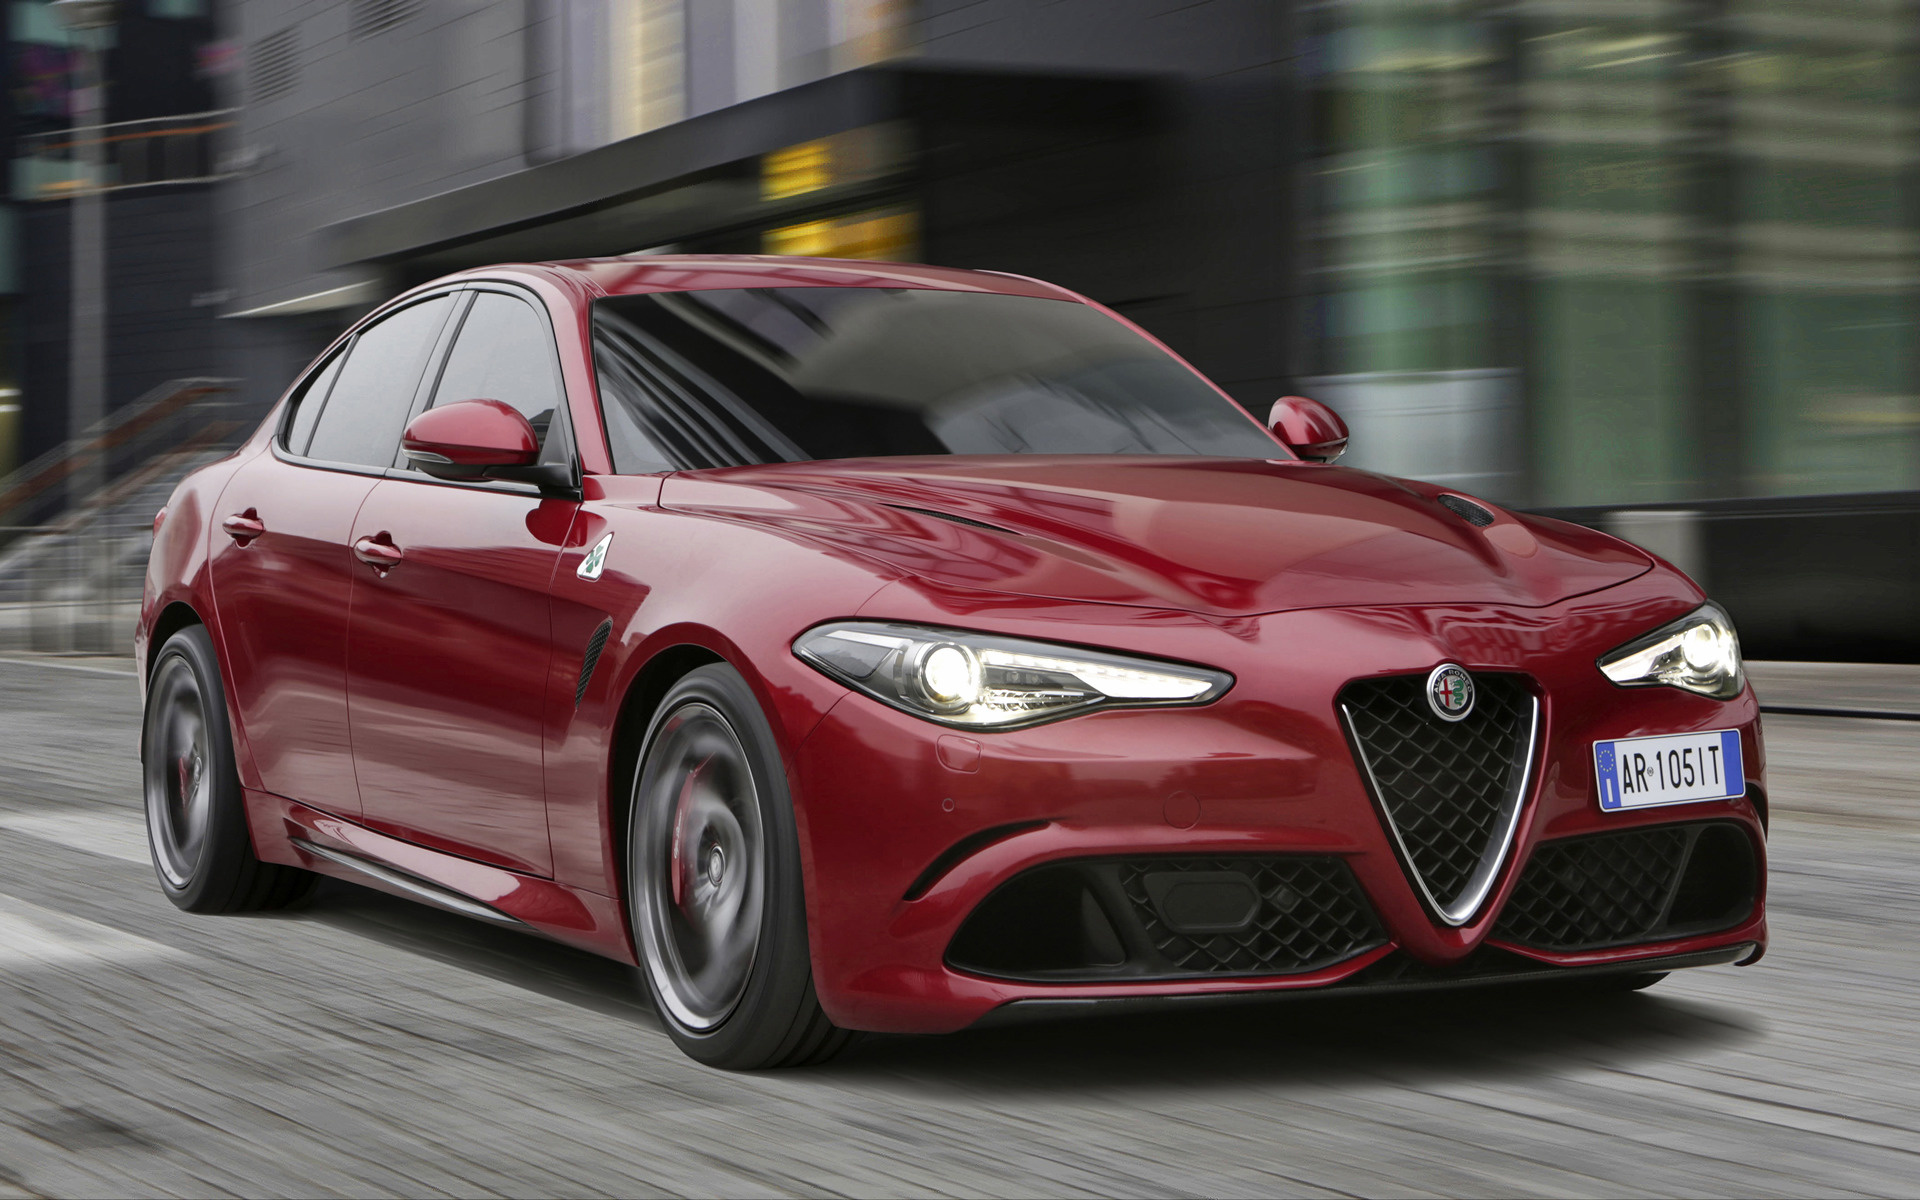 2016 Alfa Romeo Giulia Quadrifoglio Wallpapers And Hd